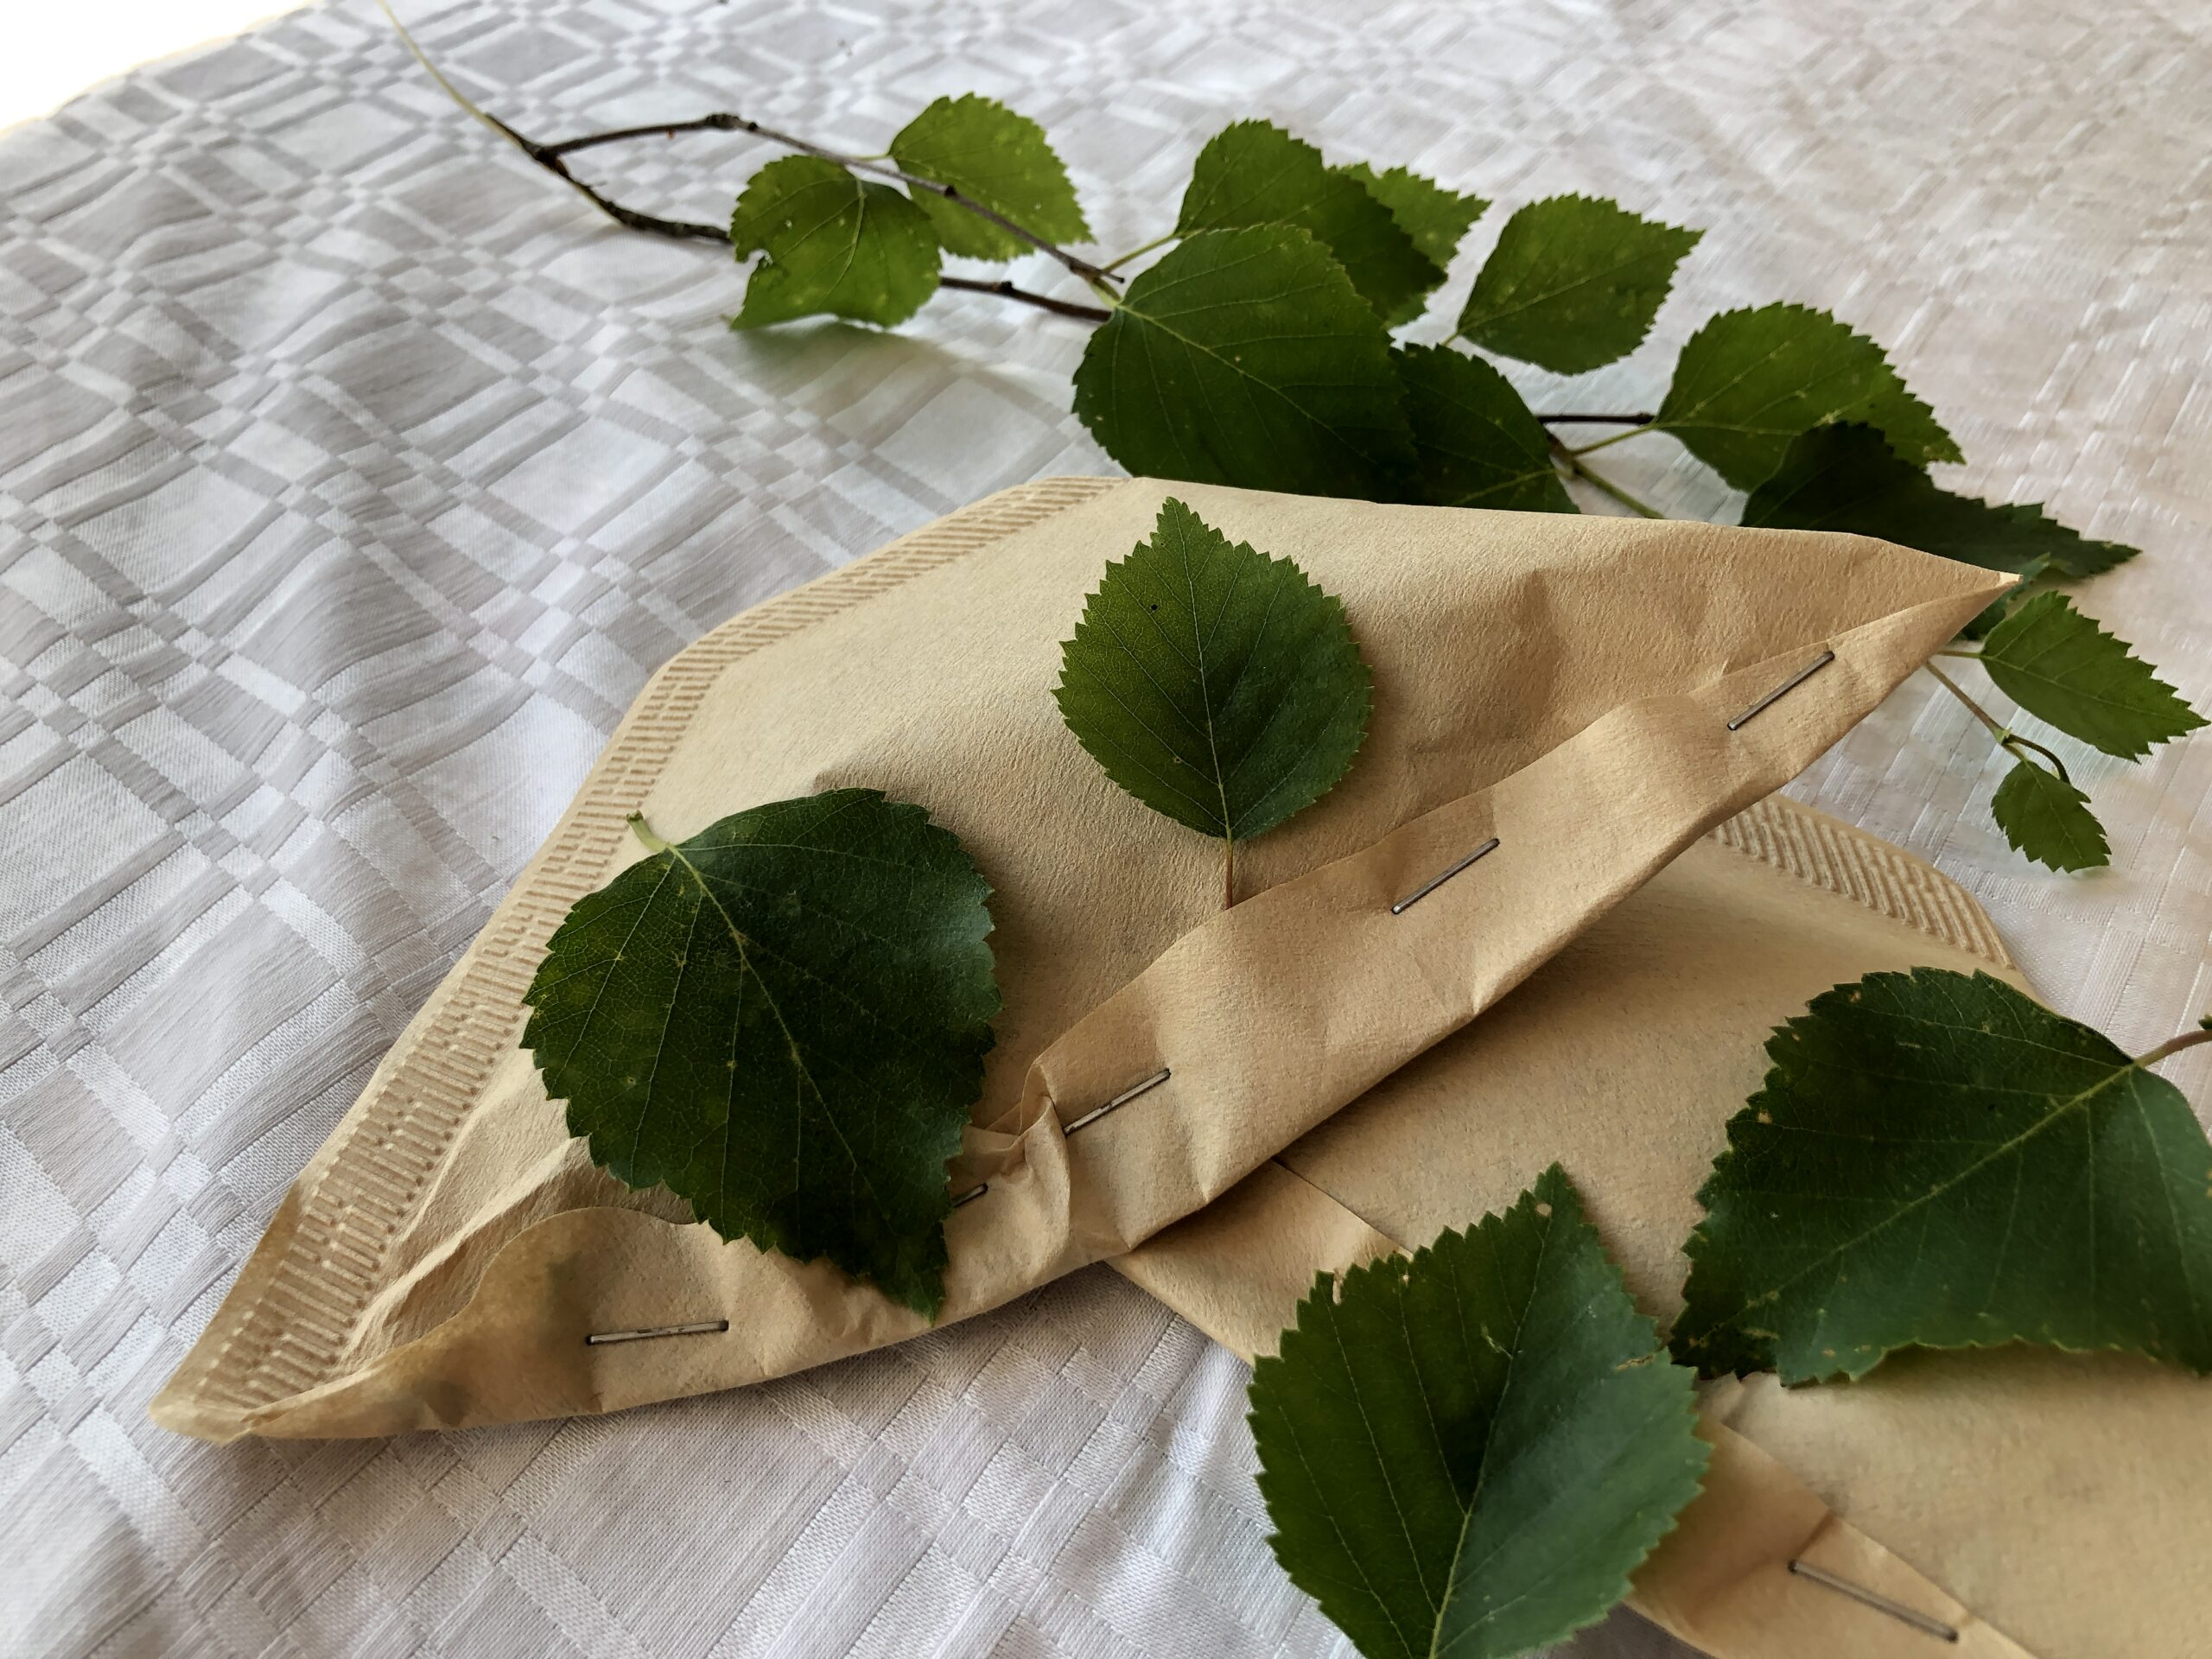 The leaves are well preserved in the freezer under the cover of a sealed filter bag.  Photo: Päivi Huotari